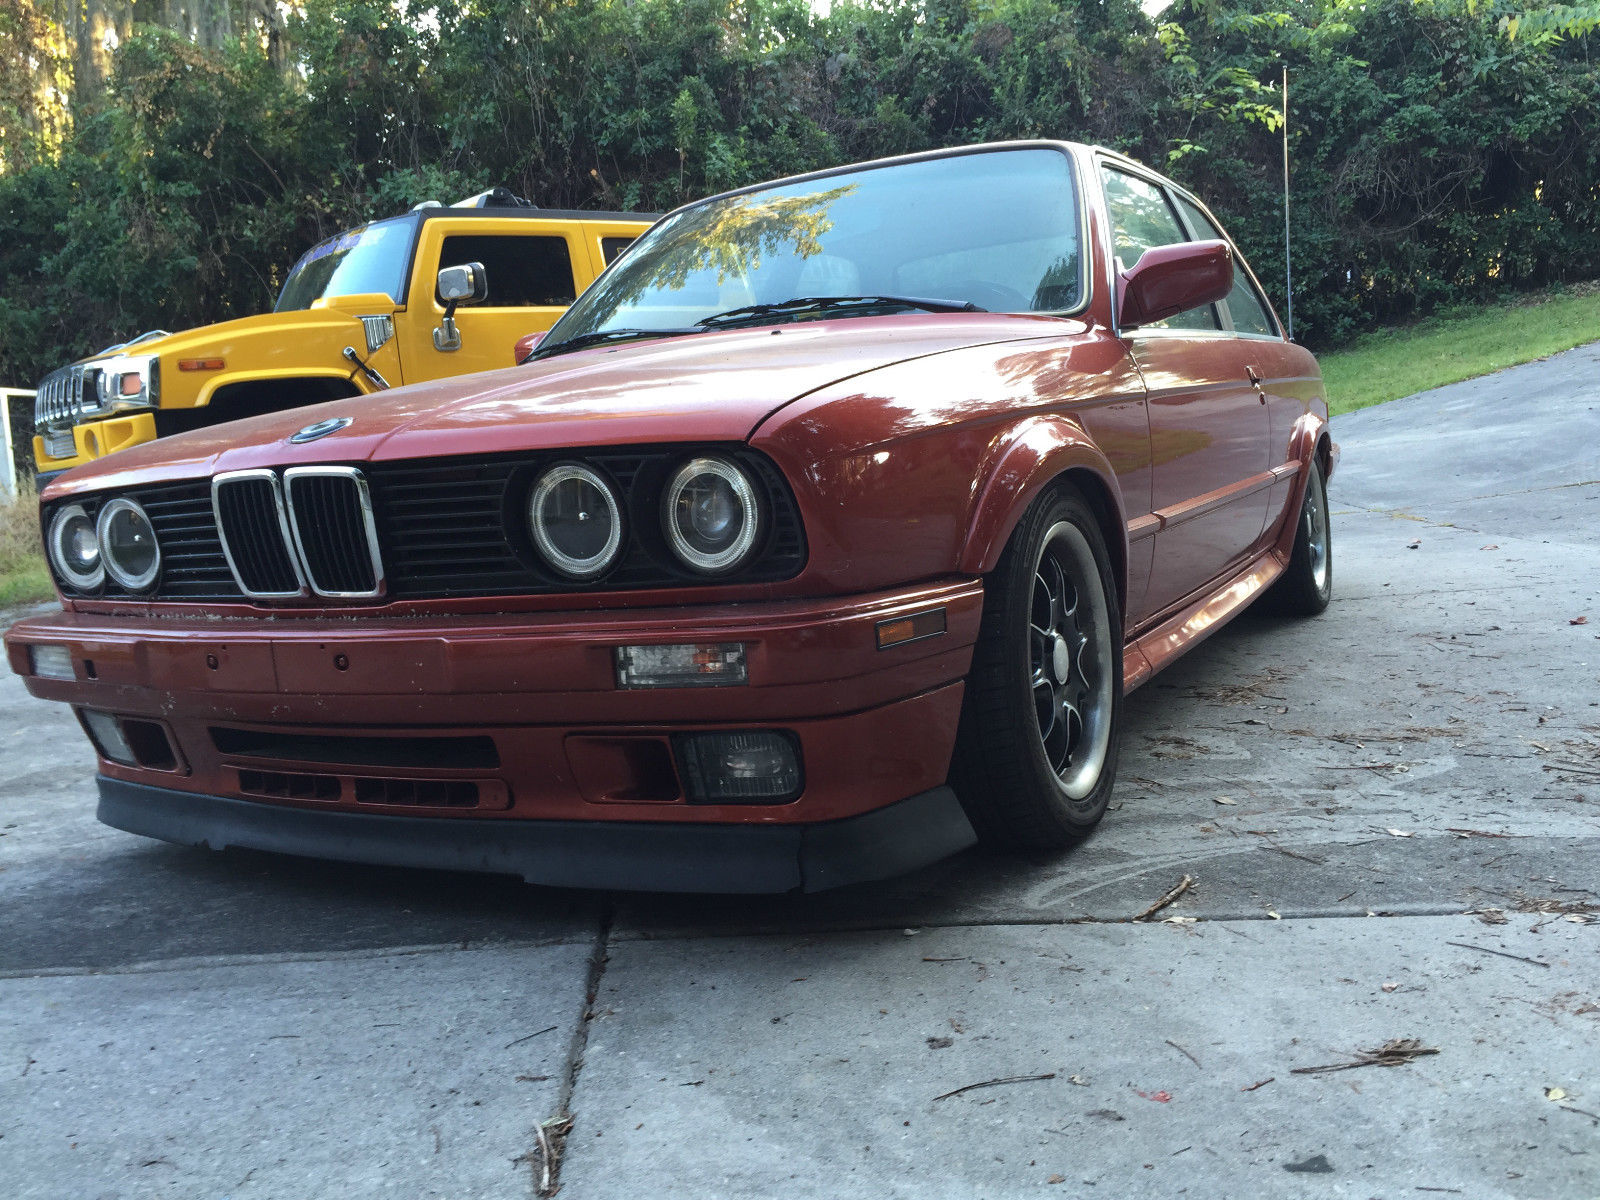 1989 bmw e30 325i lots of upgrades needs work no reserve classic bmw 3 series 1989 for sale. Black Bedroom Furniture Sets. Home Design Ideas